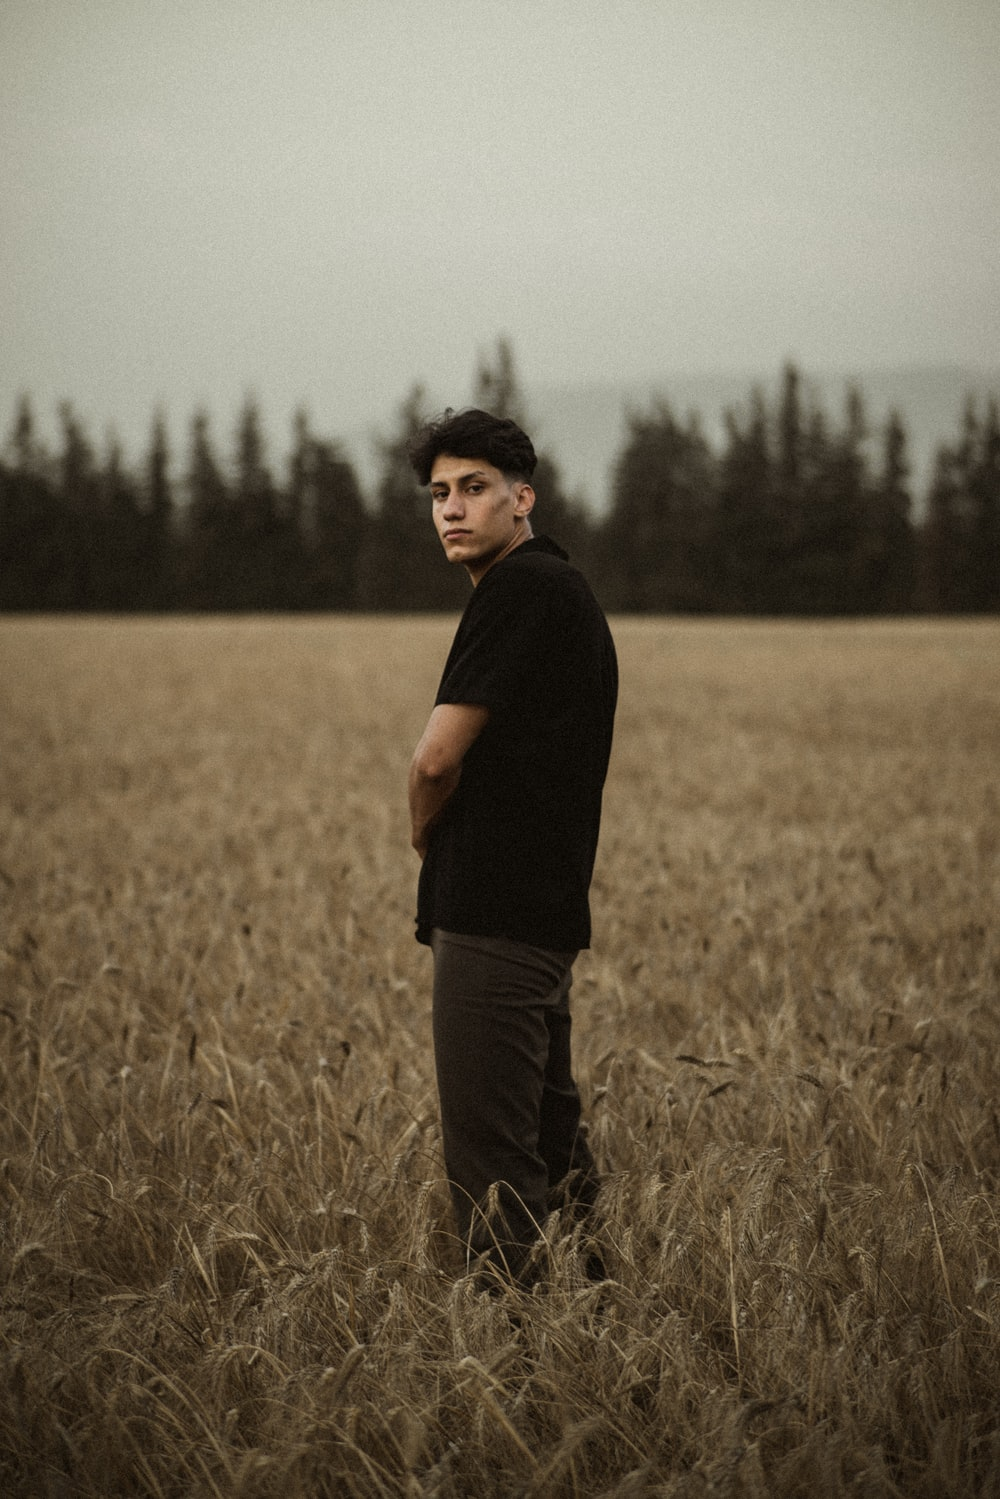 man in black t-shirt standing on brown grass field during daytime